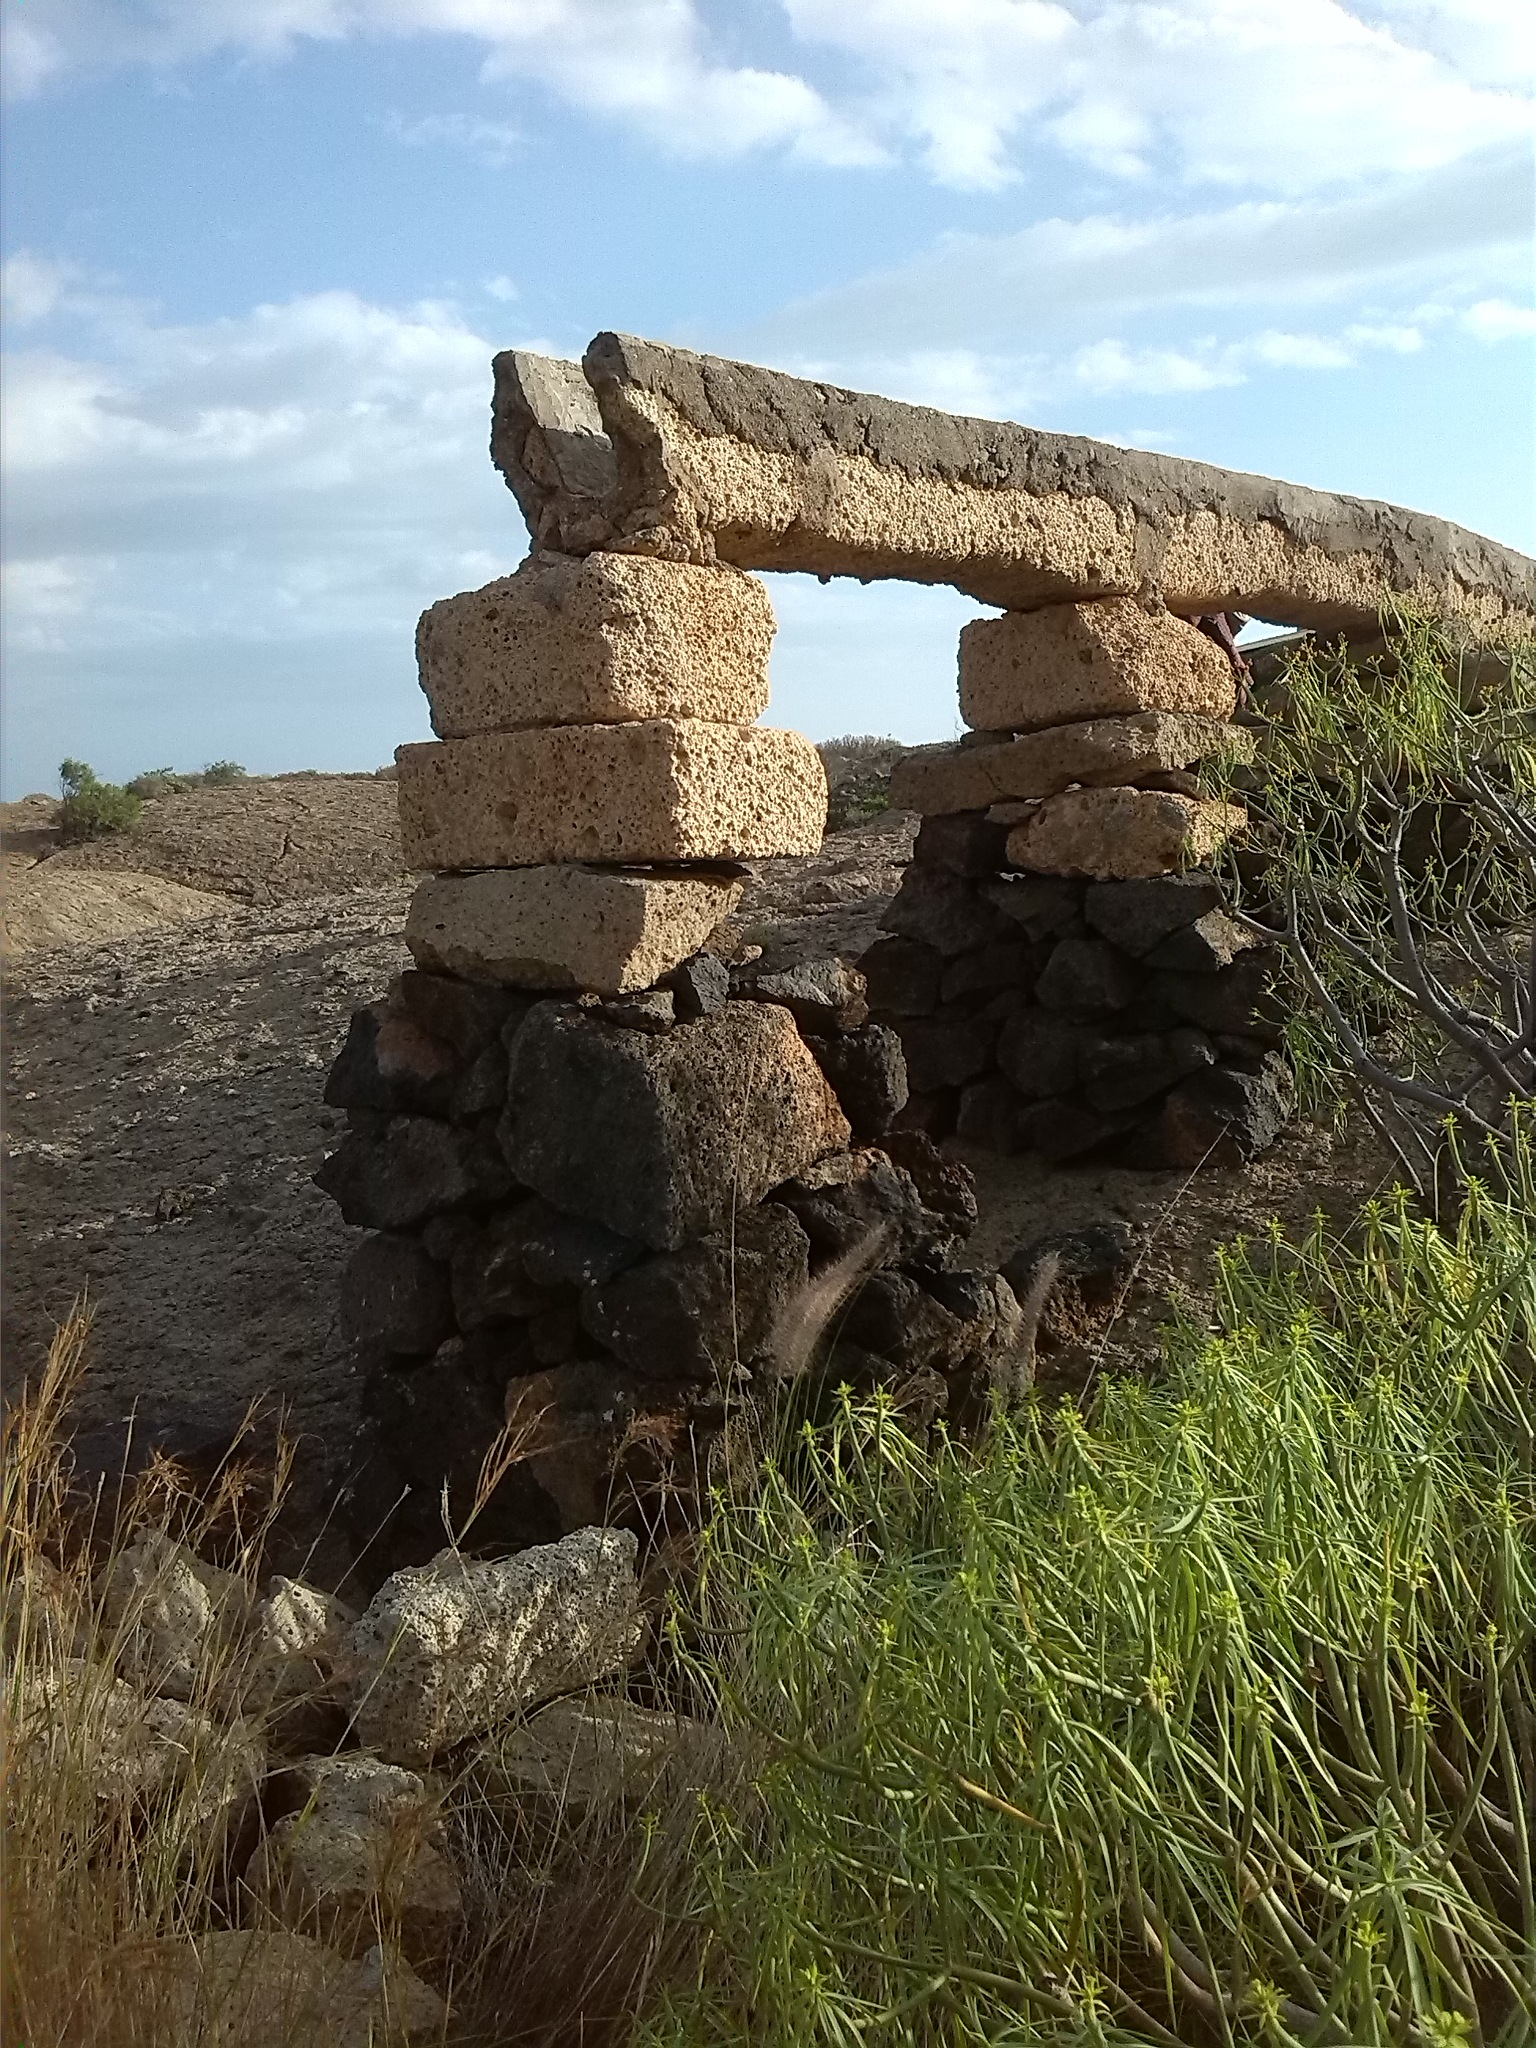 TAJEA..OLD AGRICULTURE IN THE SOUTH OF TENERIFE by naturatradicionalcanarias